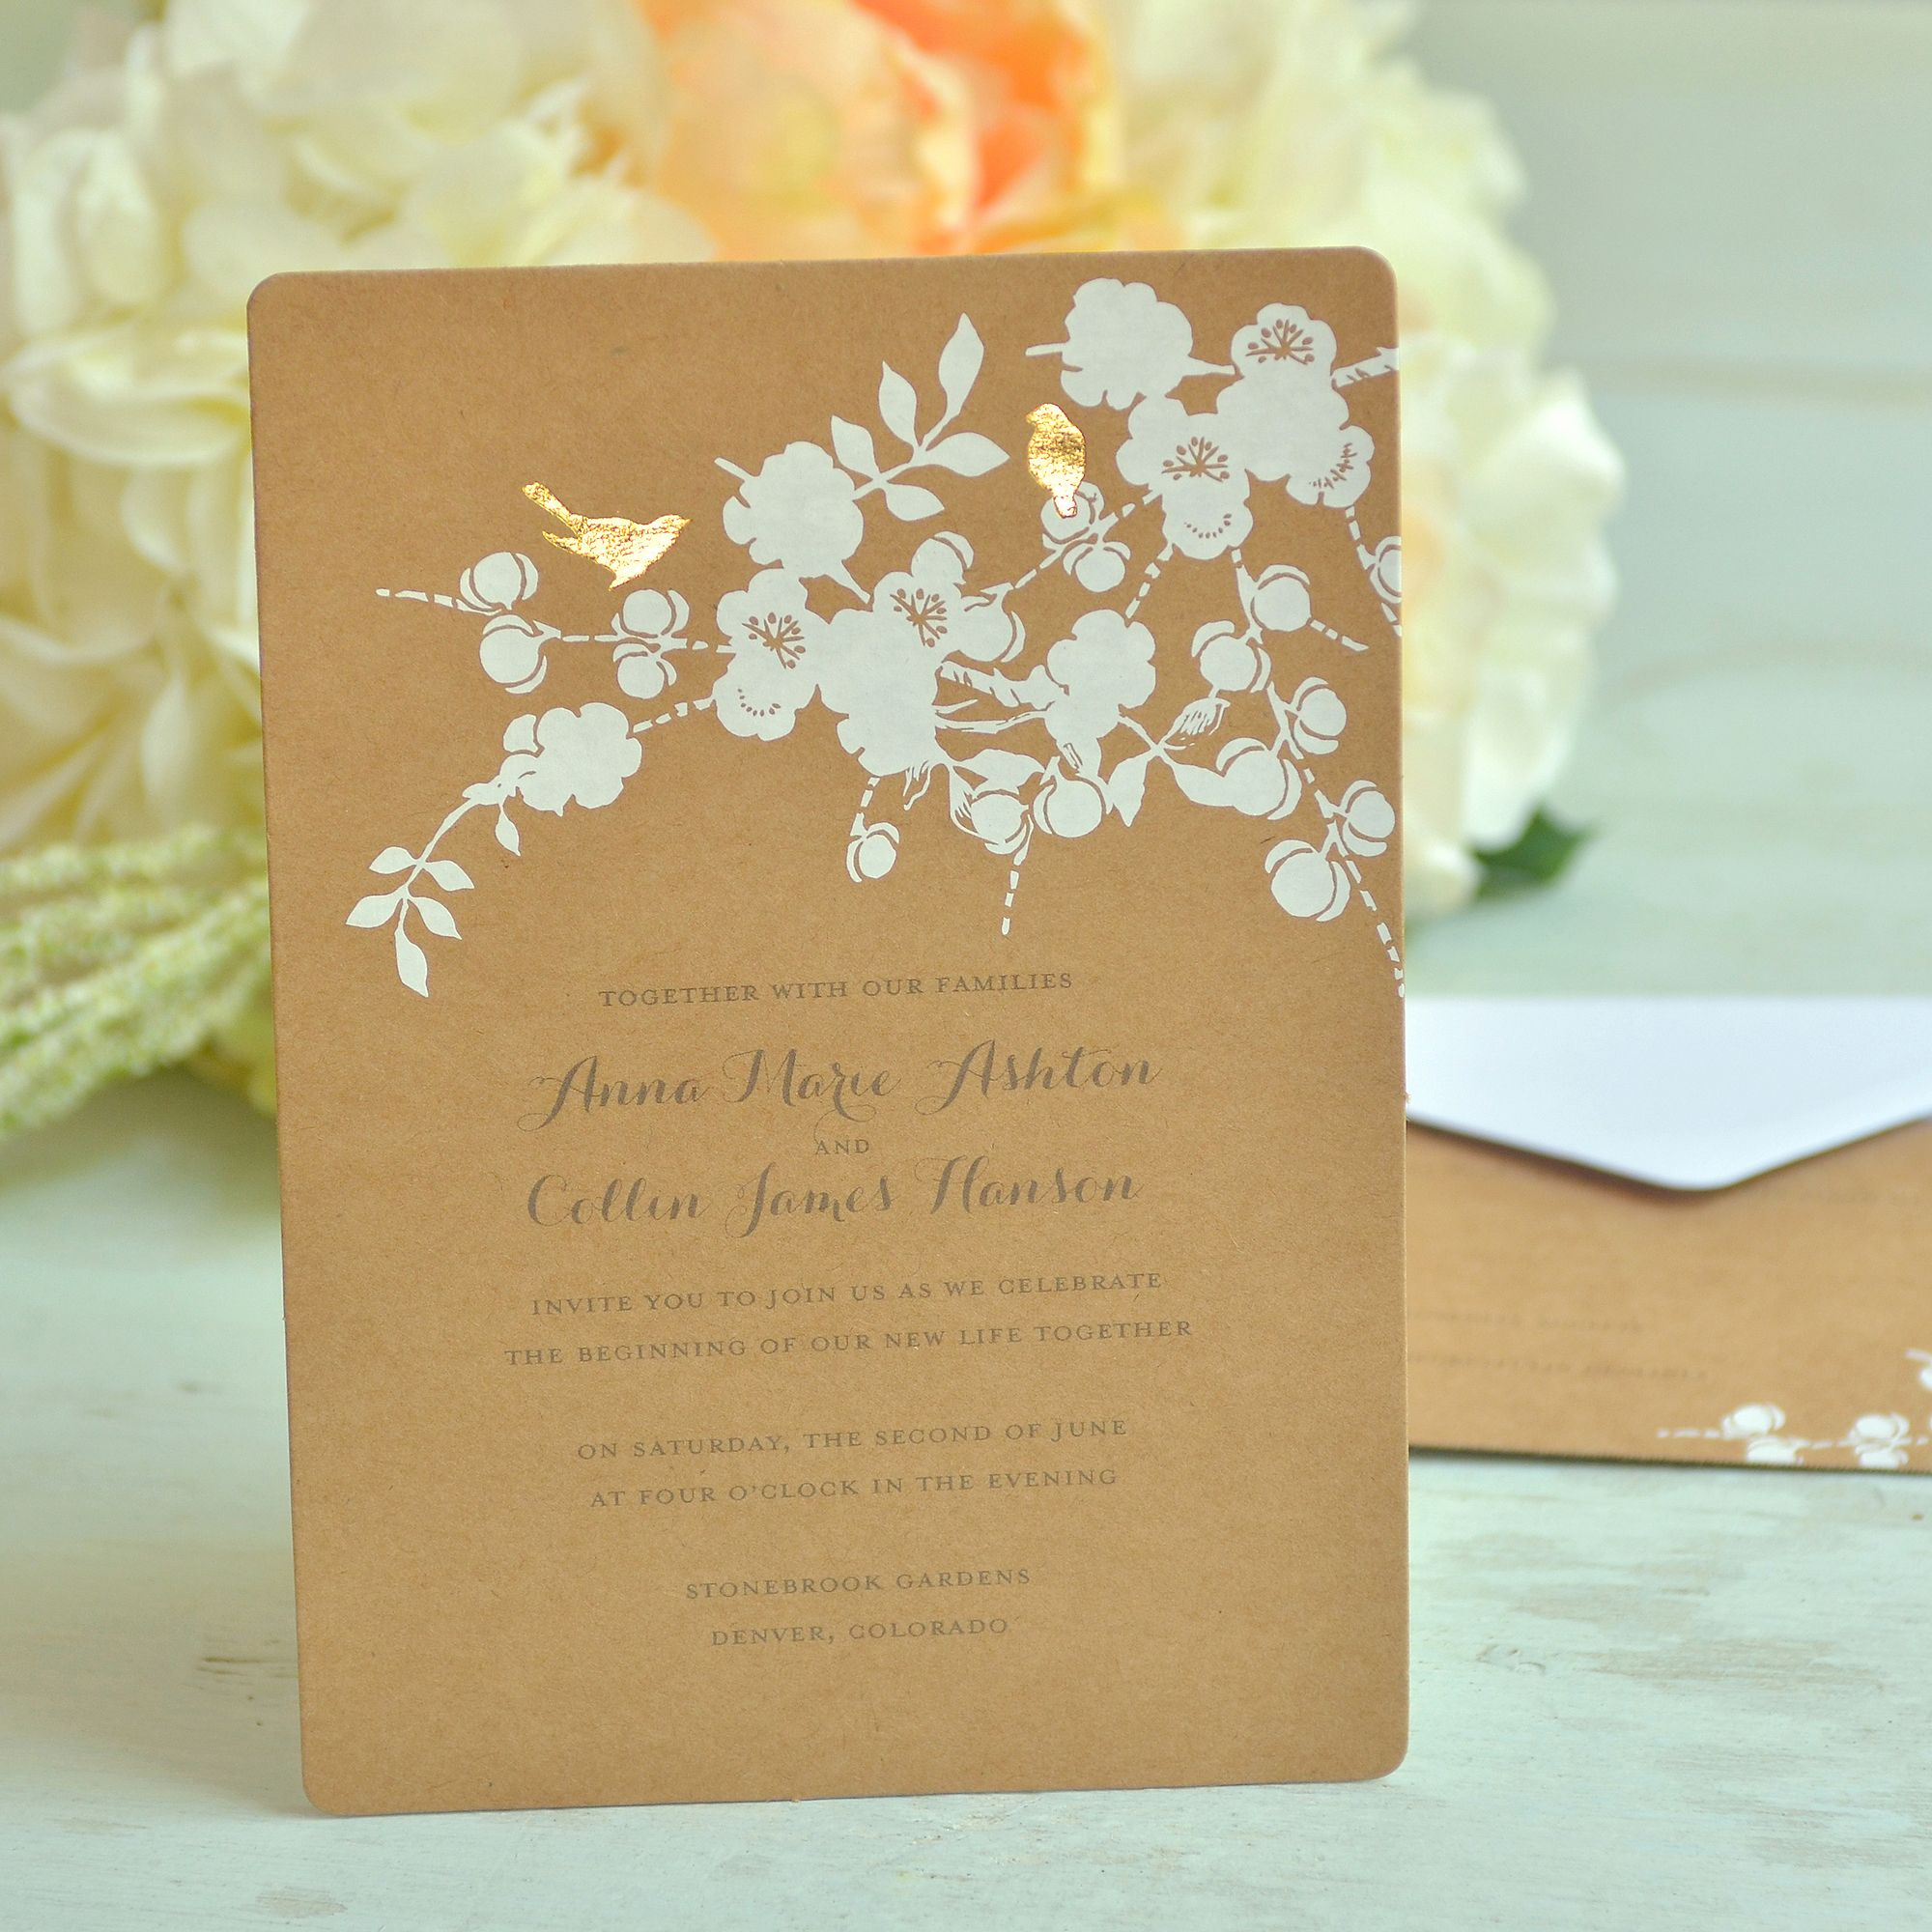 printable samples of wedding invitations%0A Nice Walmart Wedding Invitations Designs